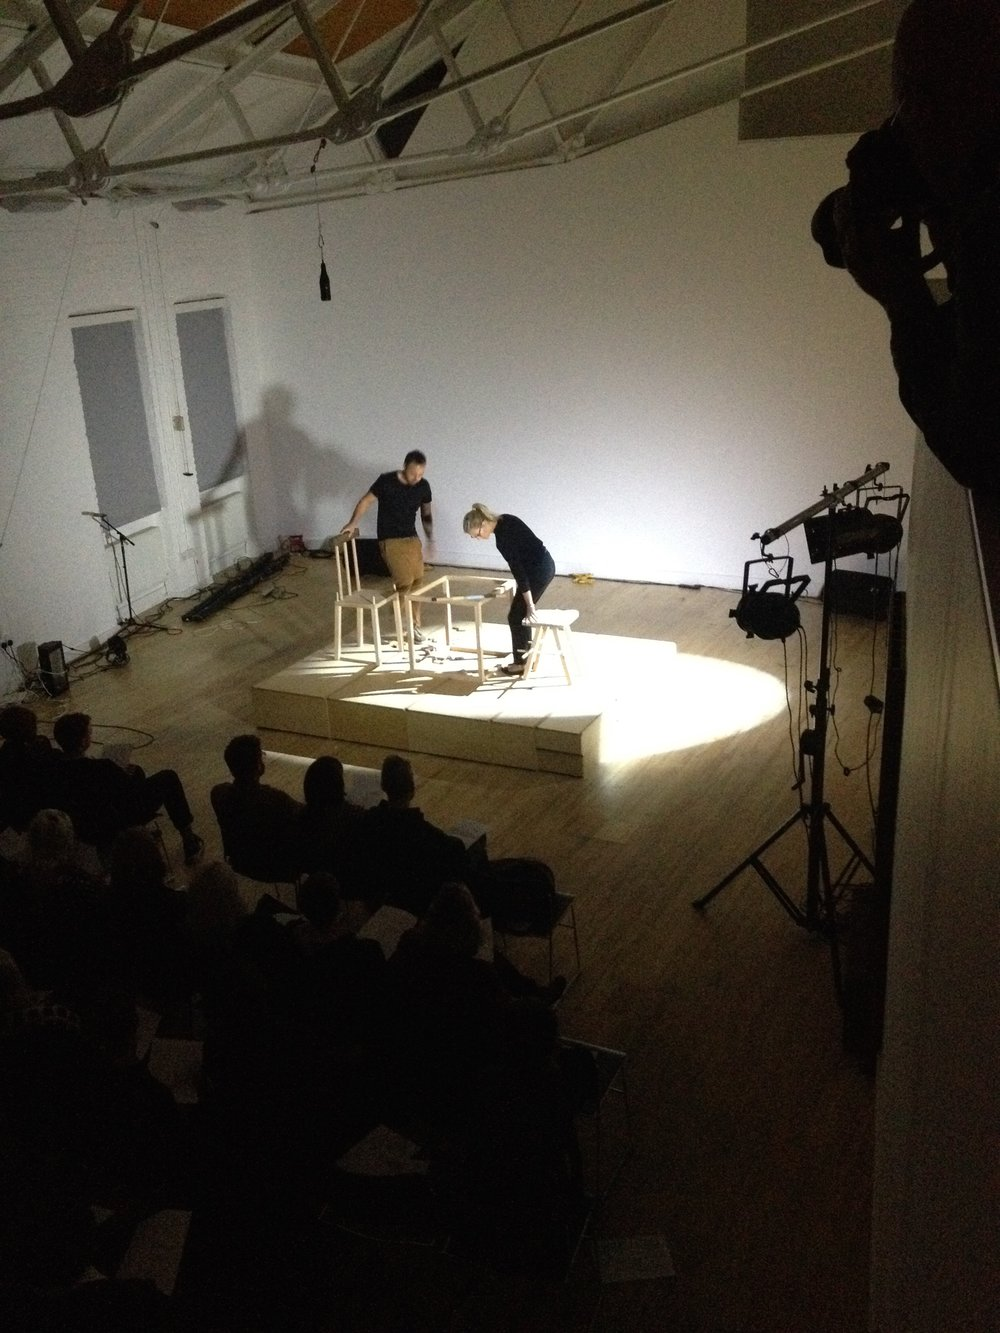 """Heino Schmid and Tessa working collaboratively on """"These Clapping Bones"""" at SHOWOFF, London. The artist was awarded Chisenhale Studio4 Residency (2014), her work was shortlisted for Wells Art Contemporary, Well's Museum, UK (2013), for the Threadneedle Prize, Mall Galleries, London (2012), it was selected to exhibit in the Royal Academy Summer Show (2011) and she was awarded the William Coldstream Memorial Prize for which her work acquired by the University College London collection (2009)."""